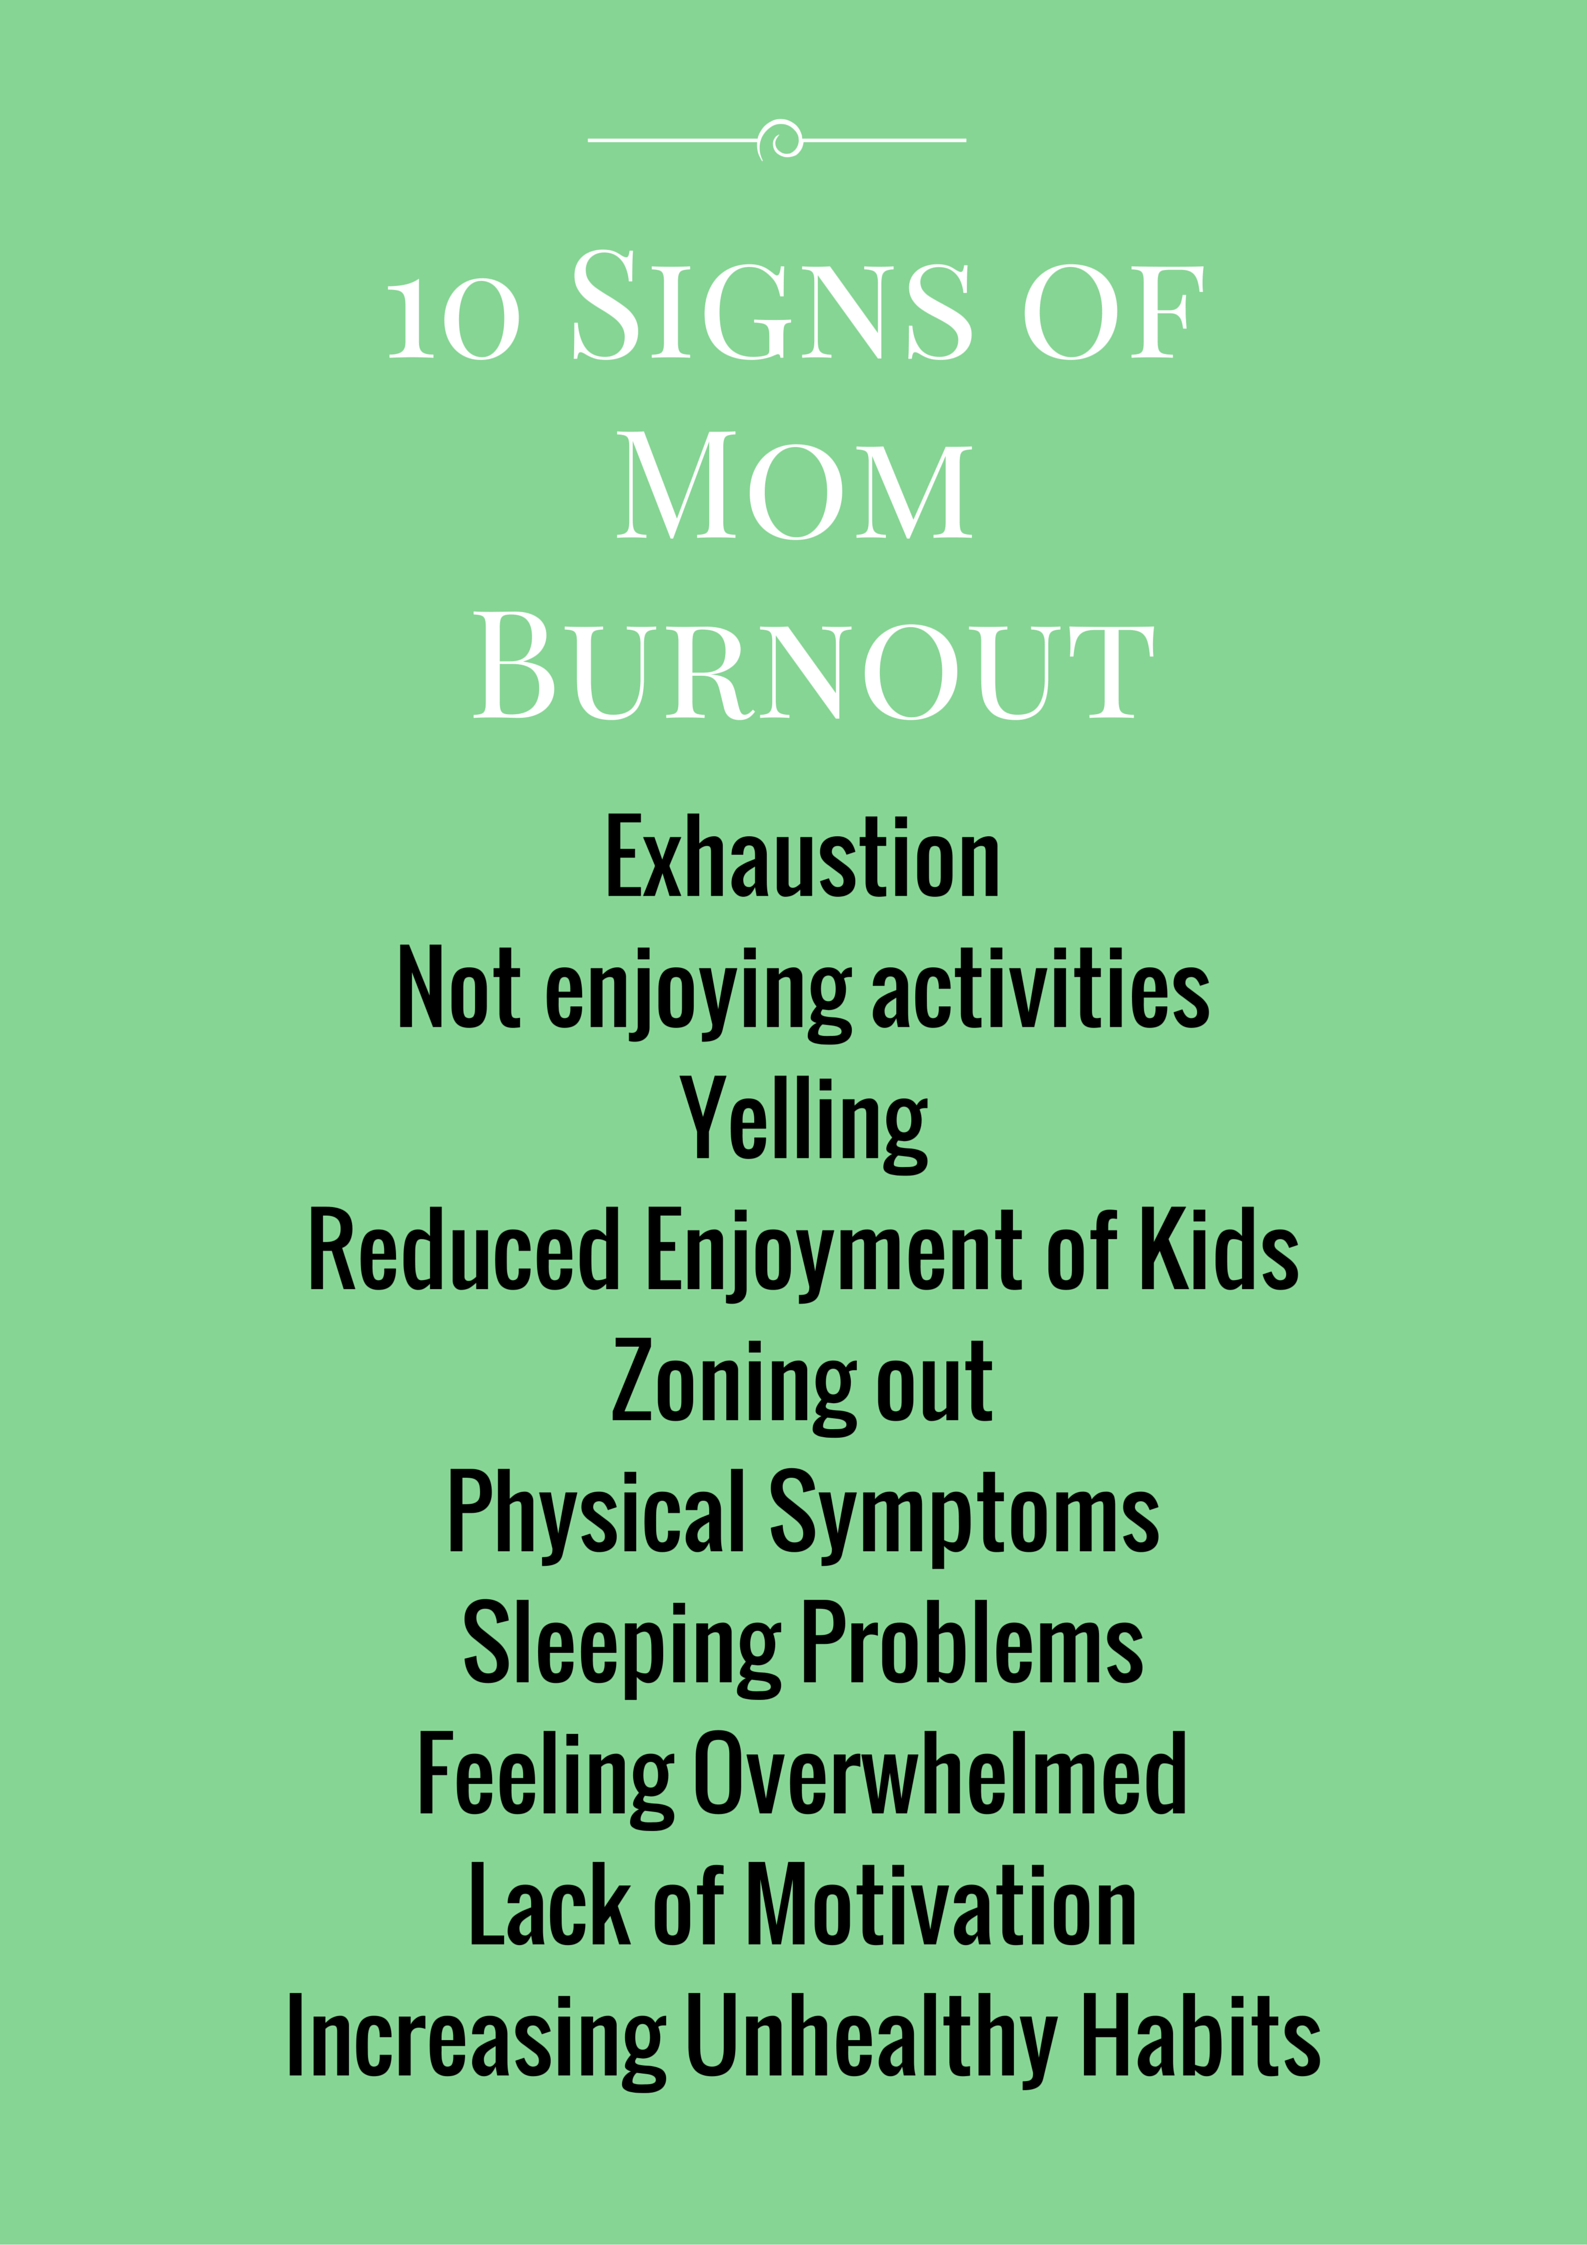 signs of mom burn out jlf counseling services is it possible to be burned out when you are a mom how could taking care of kids lead to burn out you think sure i am exhausted